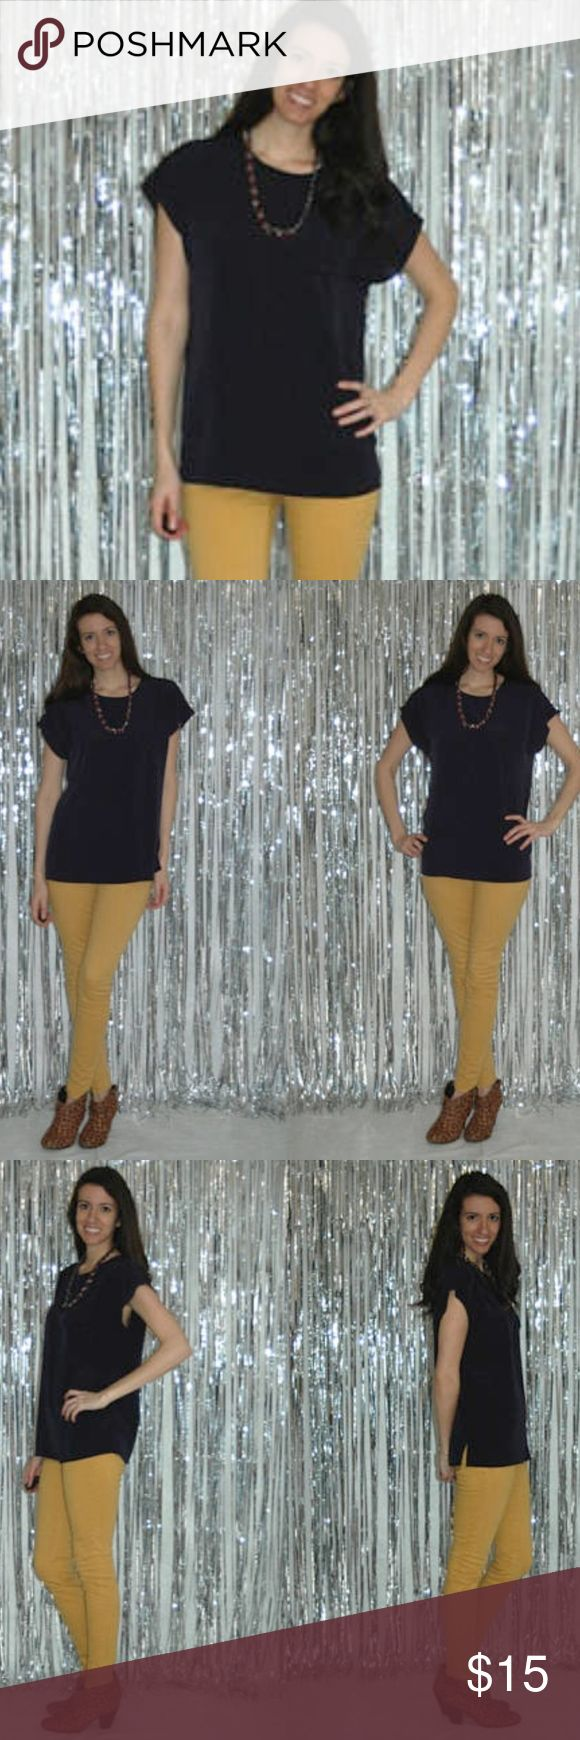 """Vtg Maggie Sweet Navy Cap Sleeve Top Navy Short Sleeve Top Medium Navy Blue Blouse. Cap Sleeve. Jewel Neckline. Keyhole, button neck closure at back. Pocket Flap with button on front Left Breast for decoration.   Shoulder to Hem: 26"""" Bust: 22.5""""  Brand: Maggie Sweet Material: Polyester Maggie Sweet Tops Blouses"""